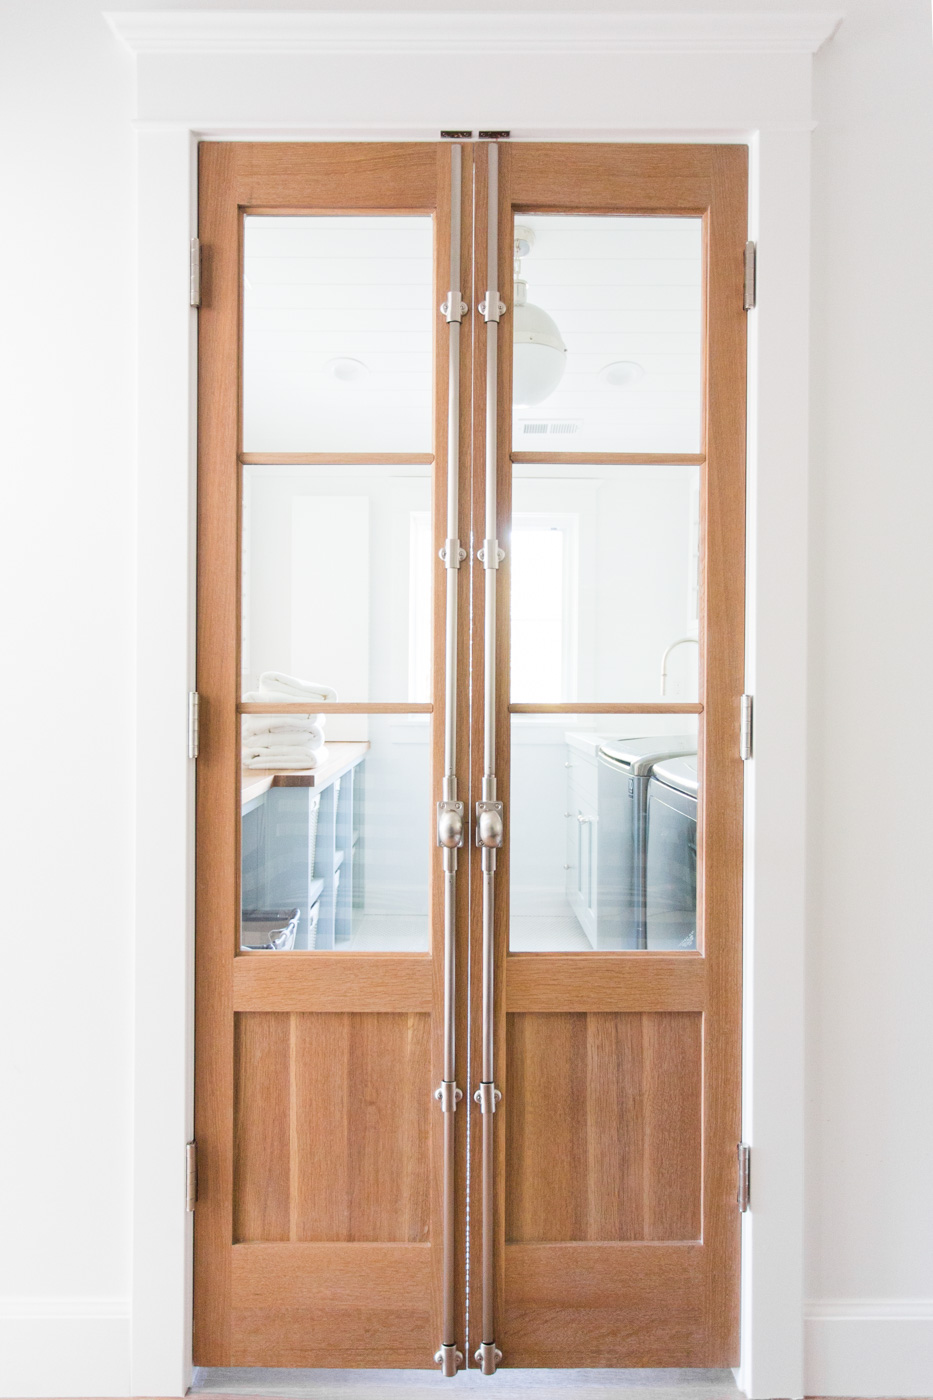 Natural wood doors with cremone bolt || Studio McGee